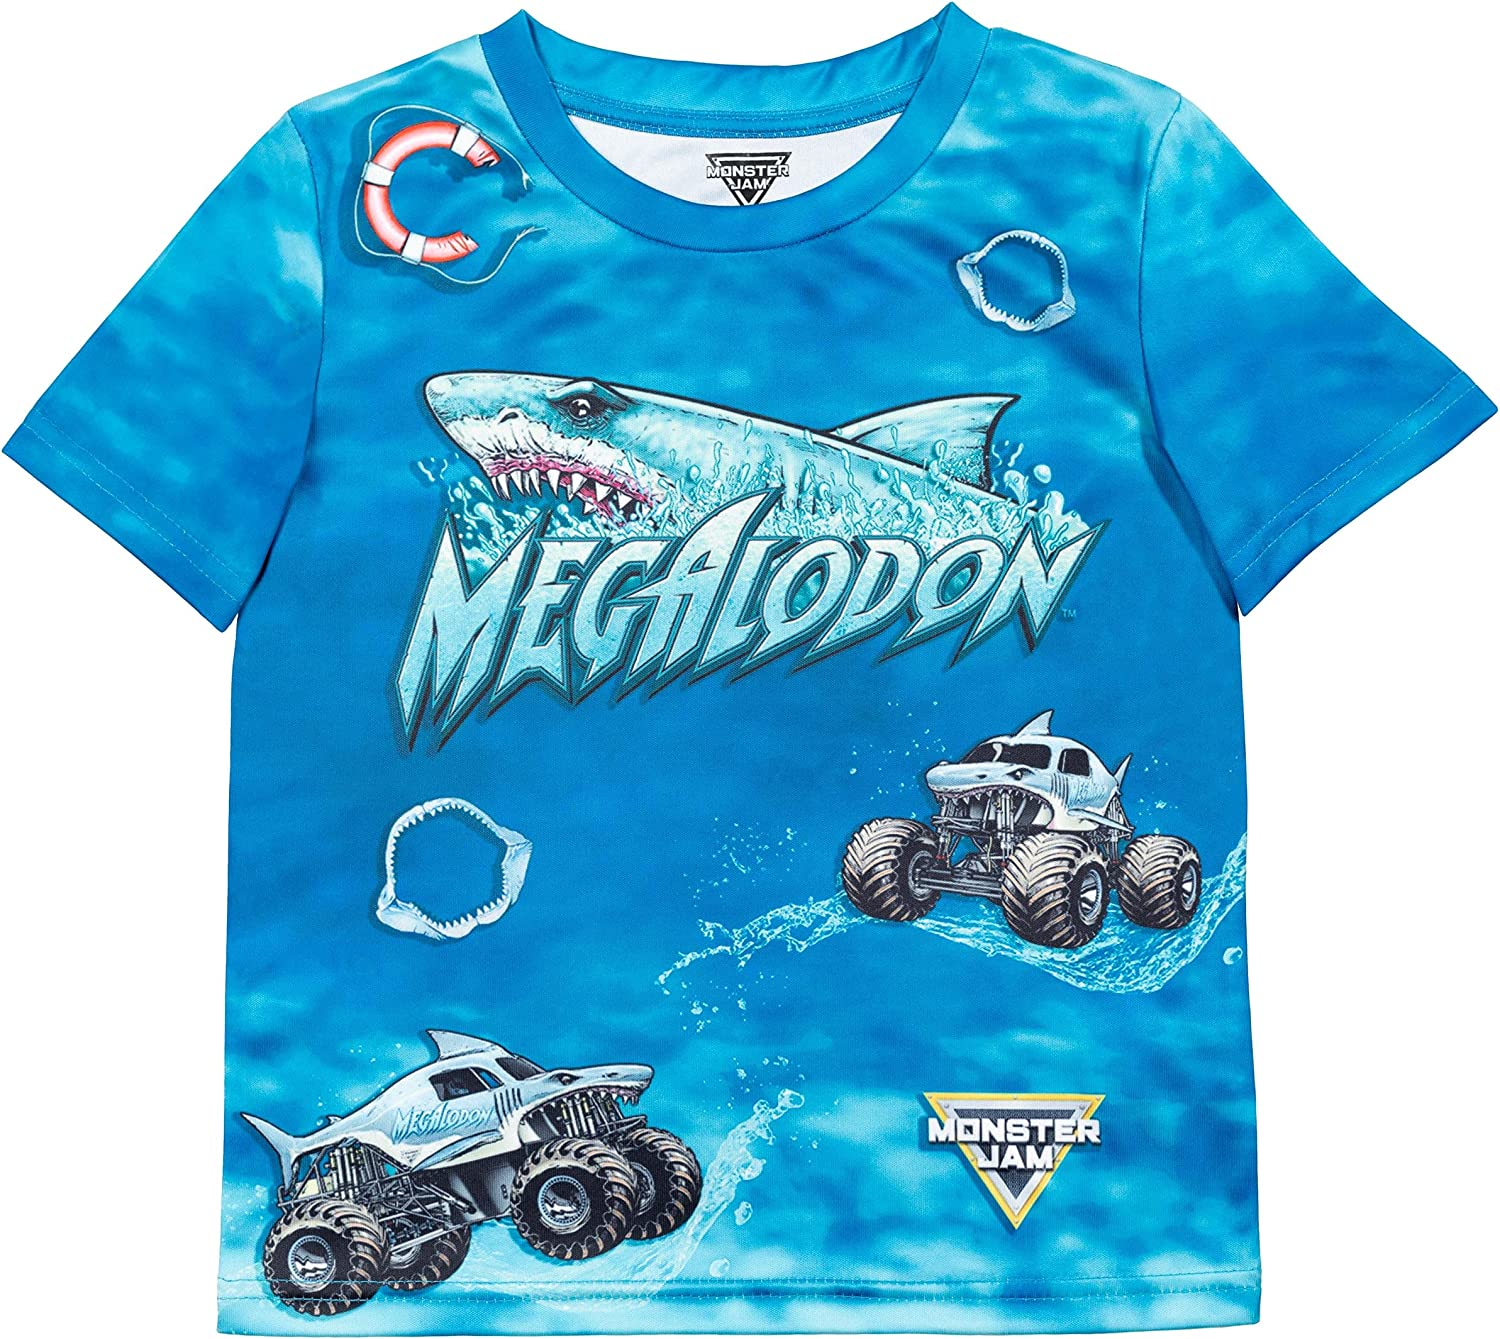 Monster Max 62% OFF Challenge the lowest price of Japan ☆ Jam Trucks Boys Graphic T-Shirt: Grave Digger Megalodon